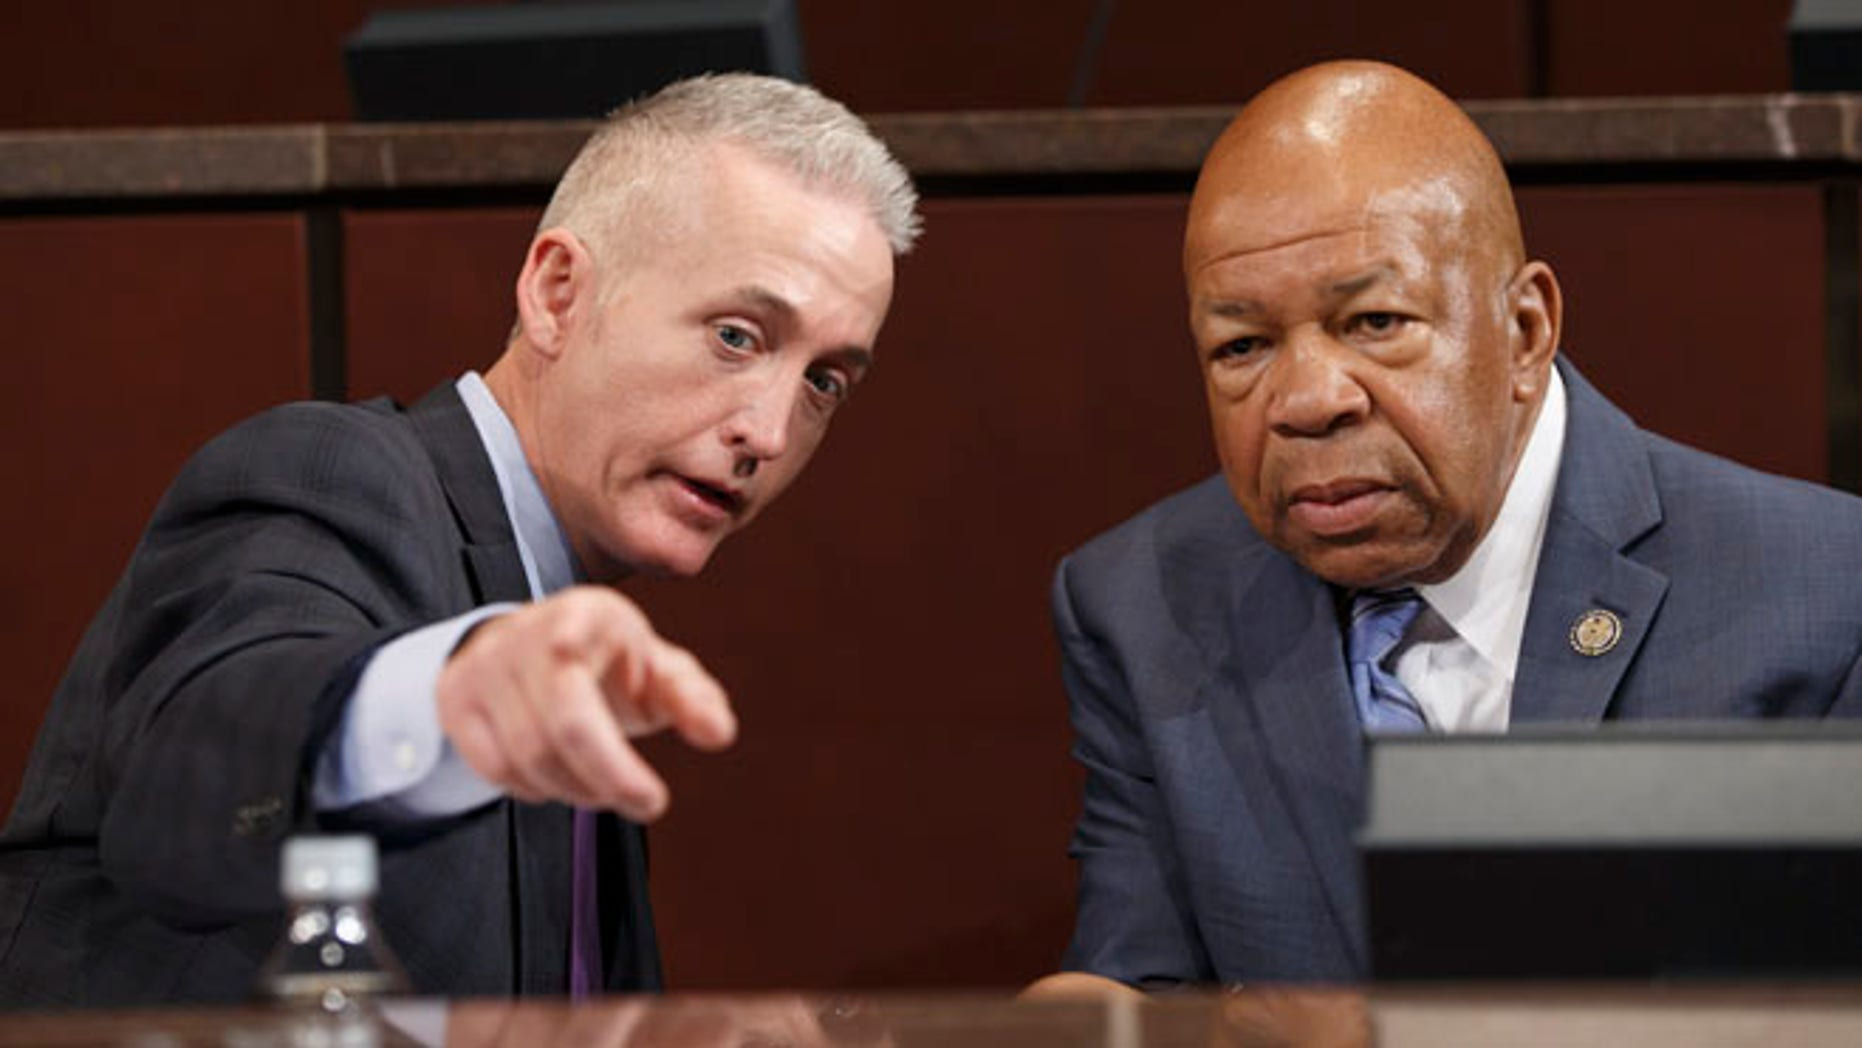 Sept. 17, 2014: Rep. Trey Gowdy, R-S.C., chairman of the House Select Committee on Benghazi, and Rep. Elijah Cummings, D-Md., right, the ranking member, confer before a hearing to investigate the 2012 attacks on the U.S. consulate in Benghazi, Libya.